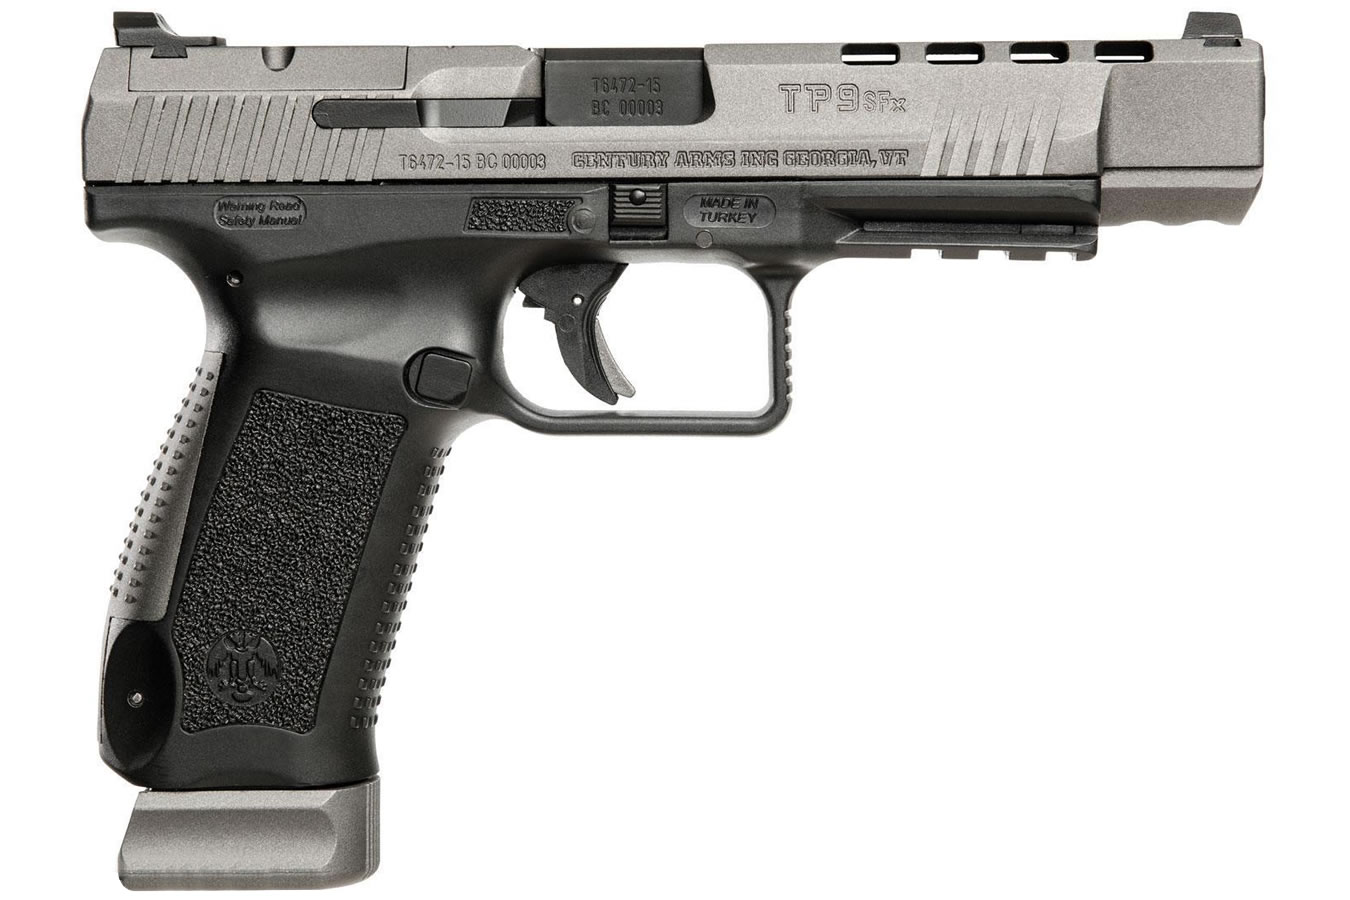 CANIK TP9SFX 9MM WITH 20 ROUND MAGAZINE